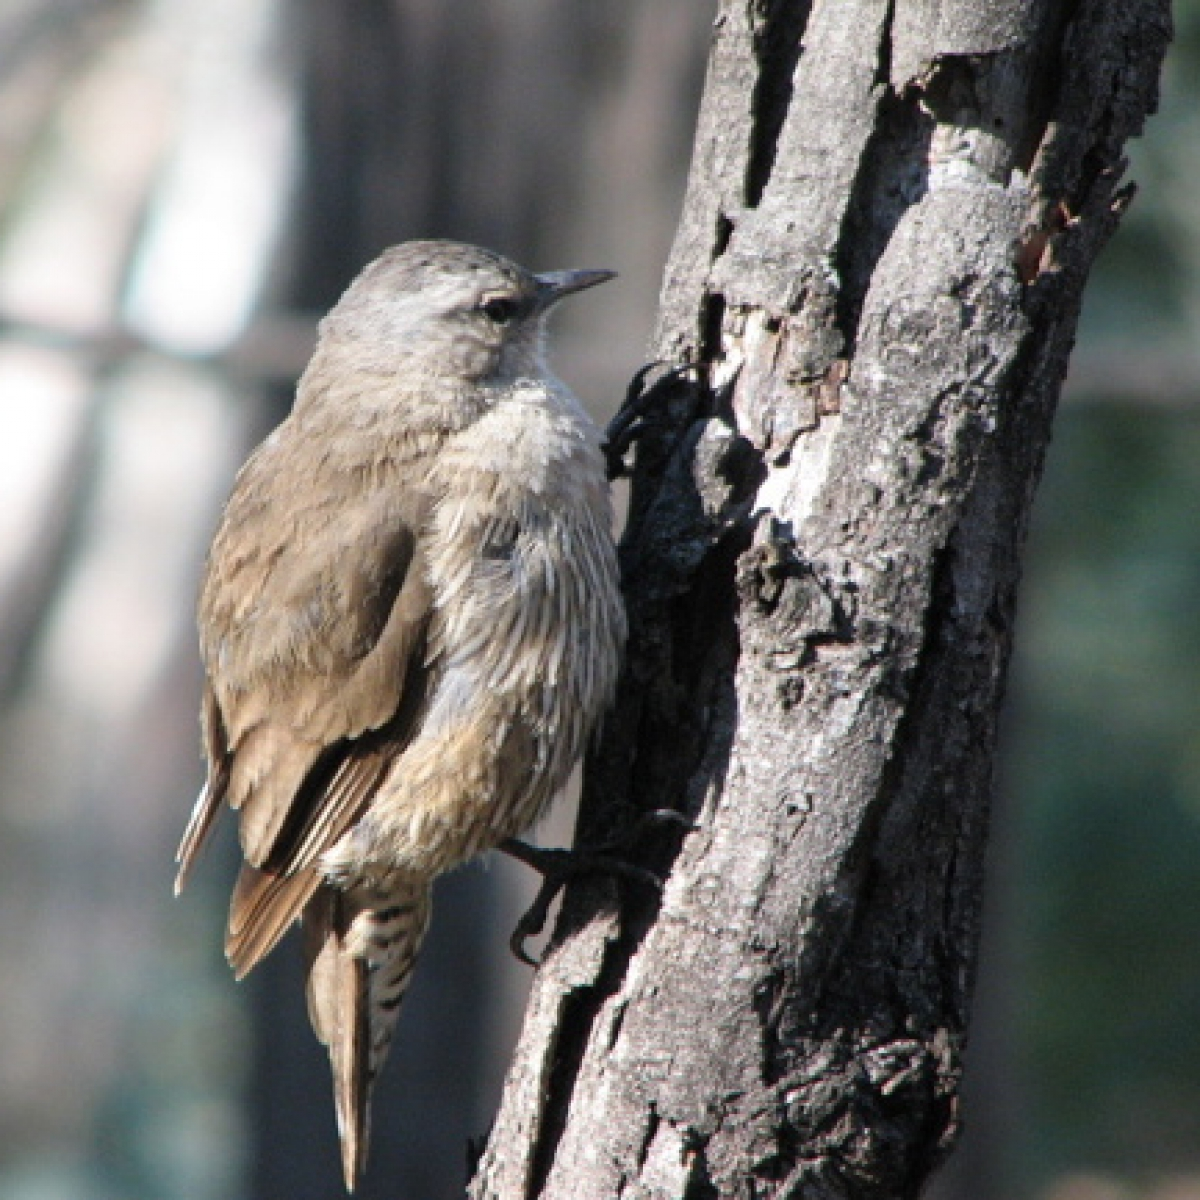 704 Brown Treecreeper